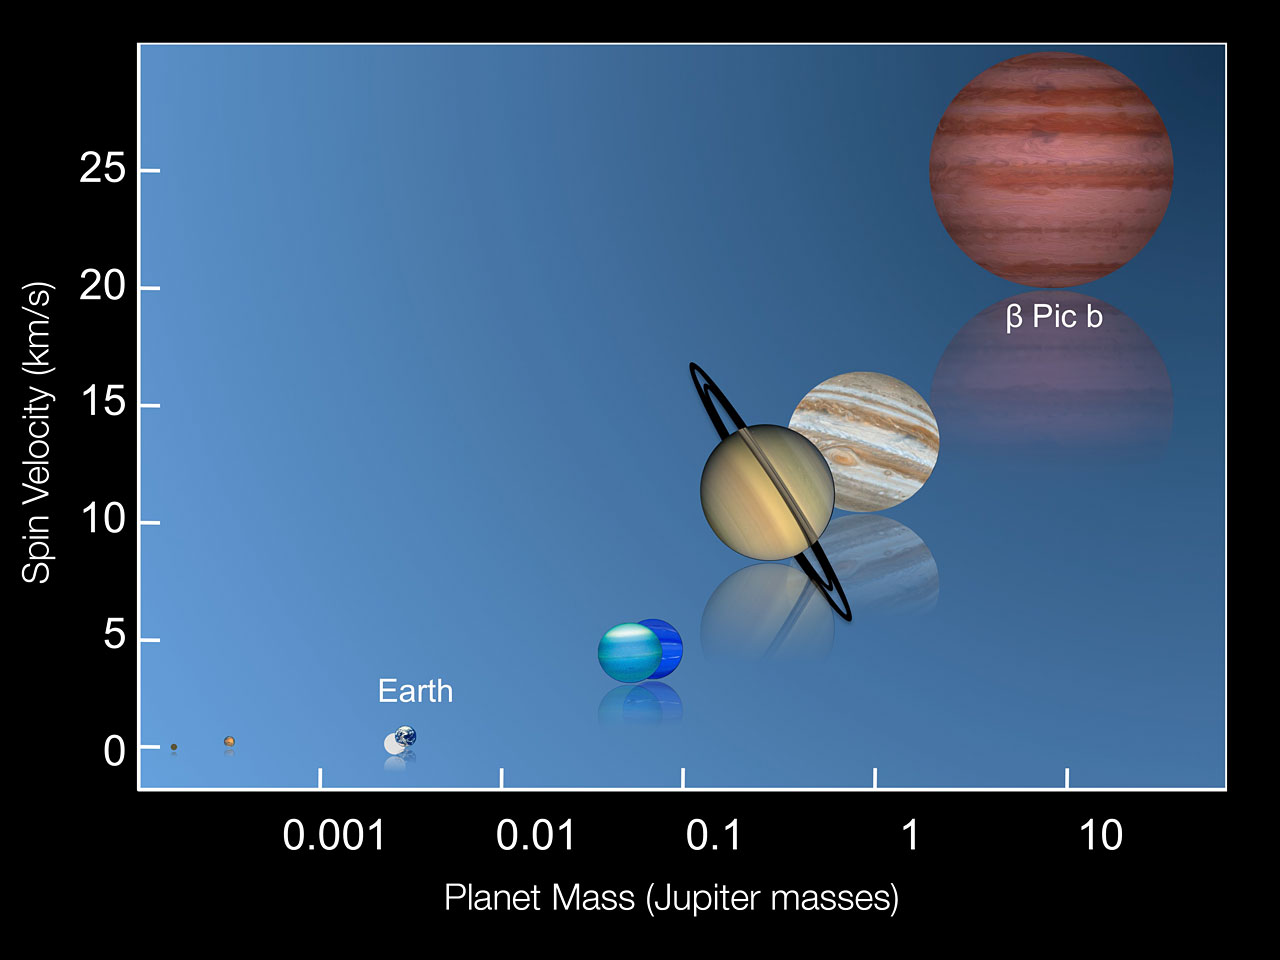 Mass and Rotation Speed of Planets Graph